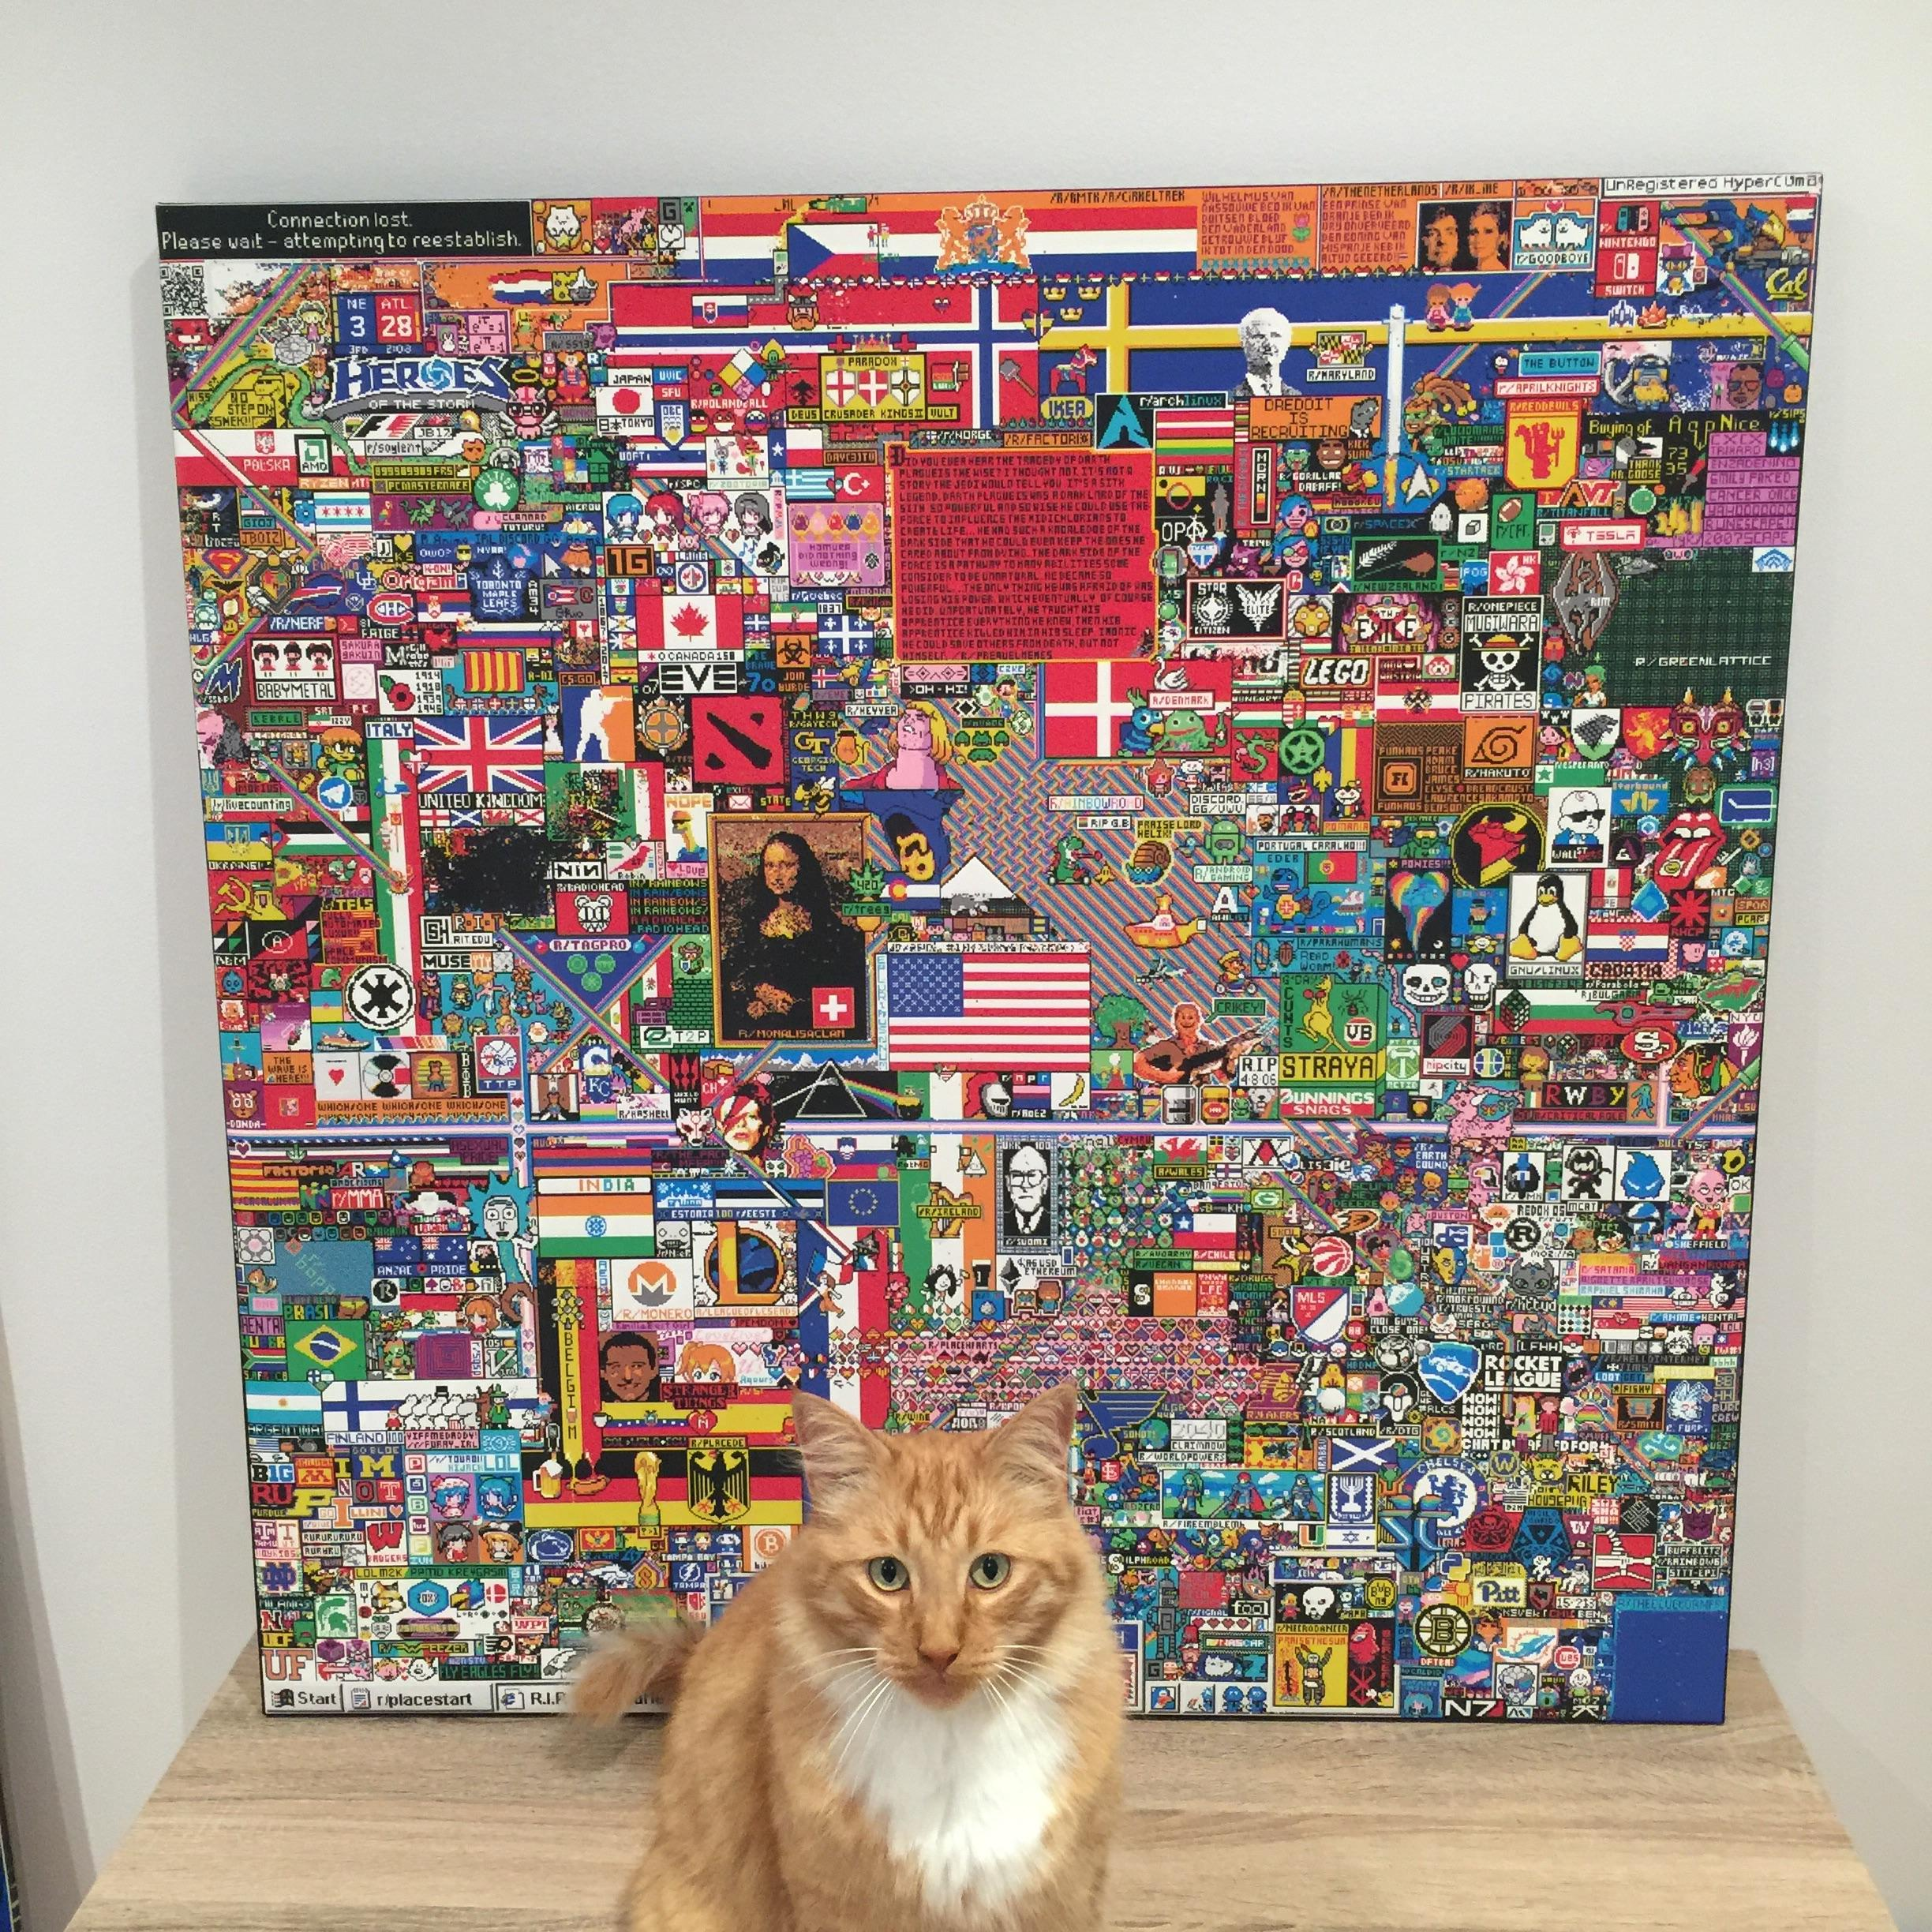 r/Place: Over a Million Redditors Got Together and Made Some